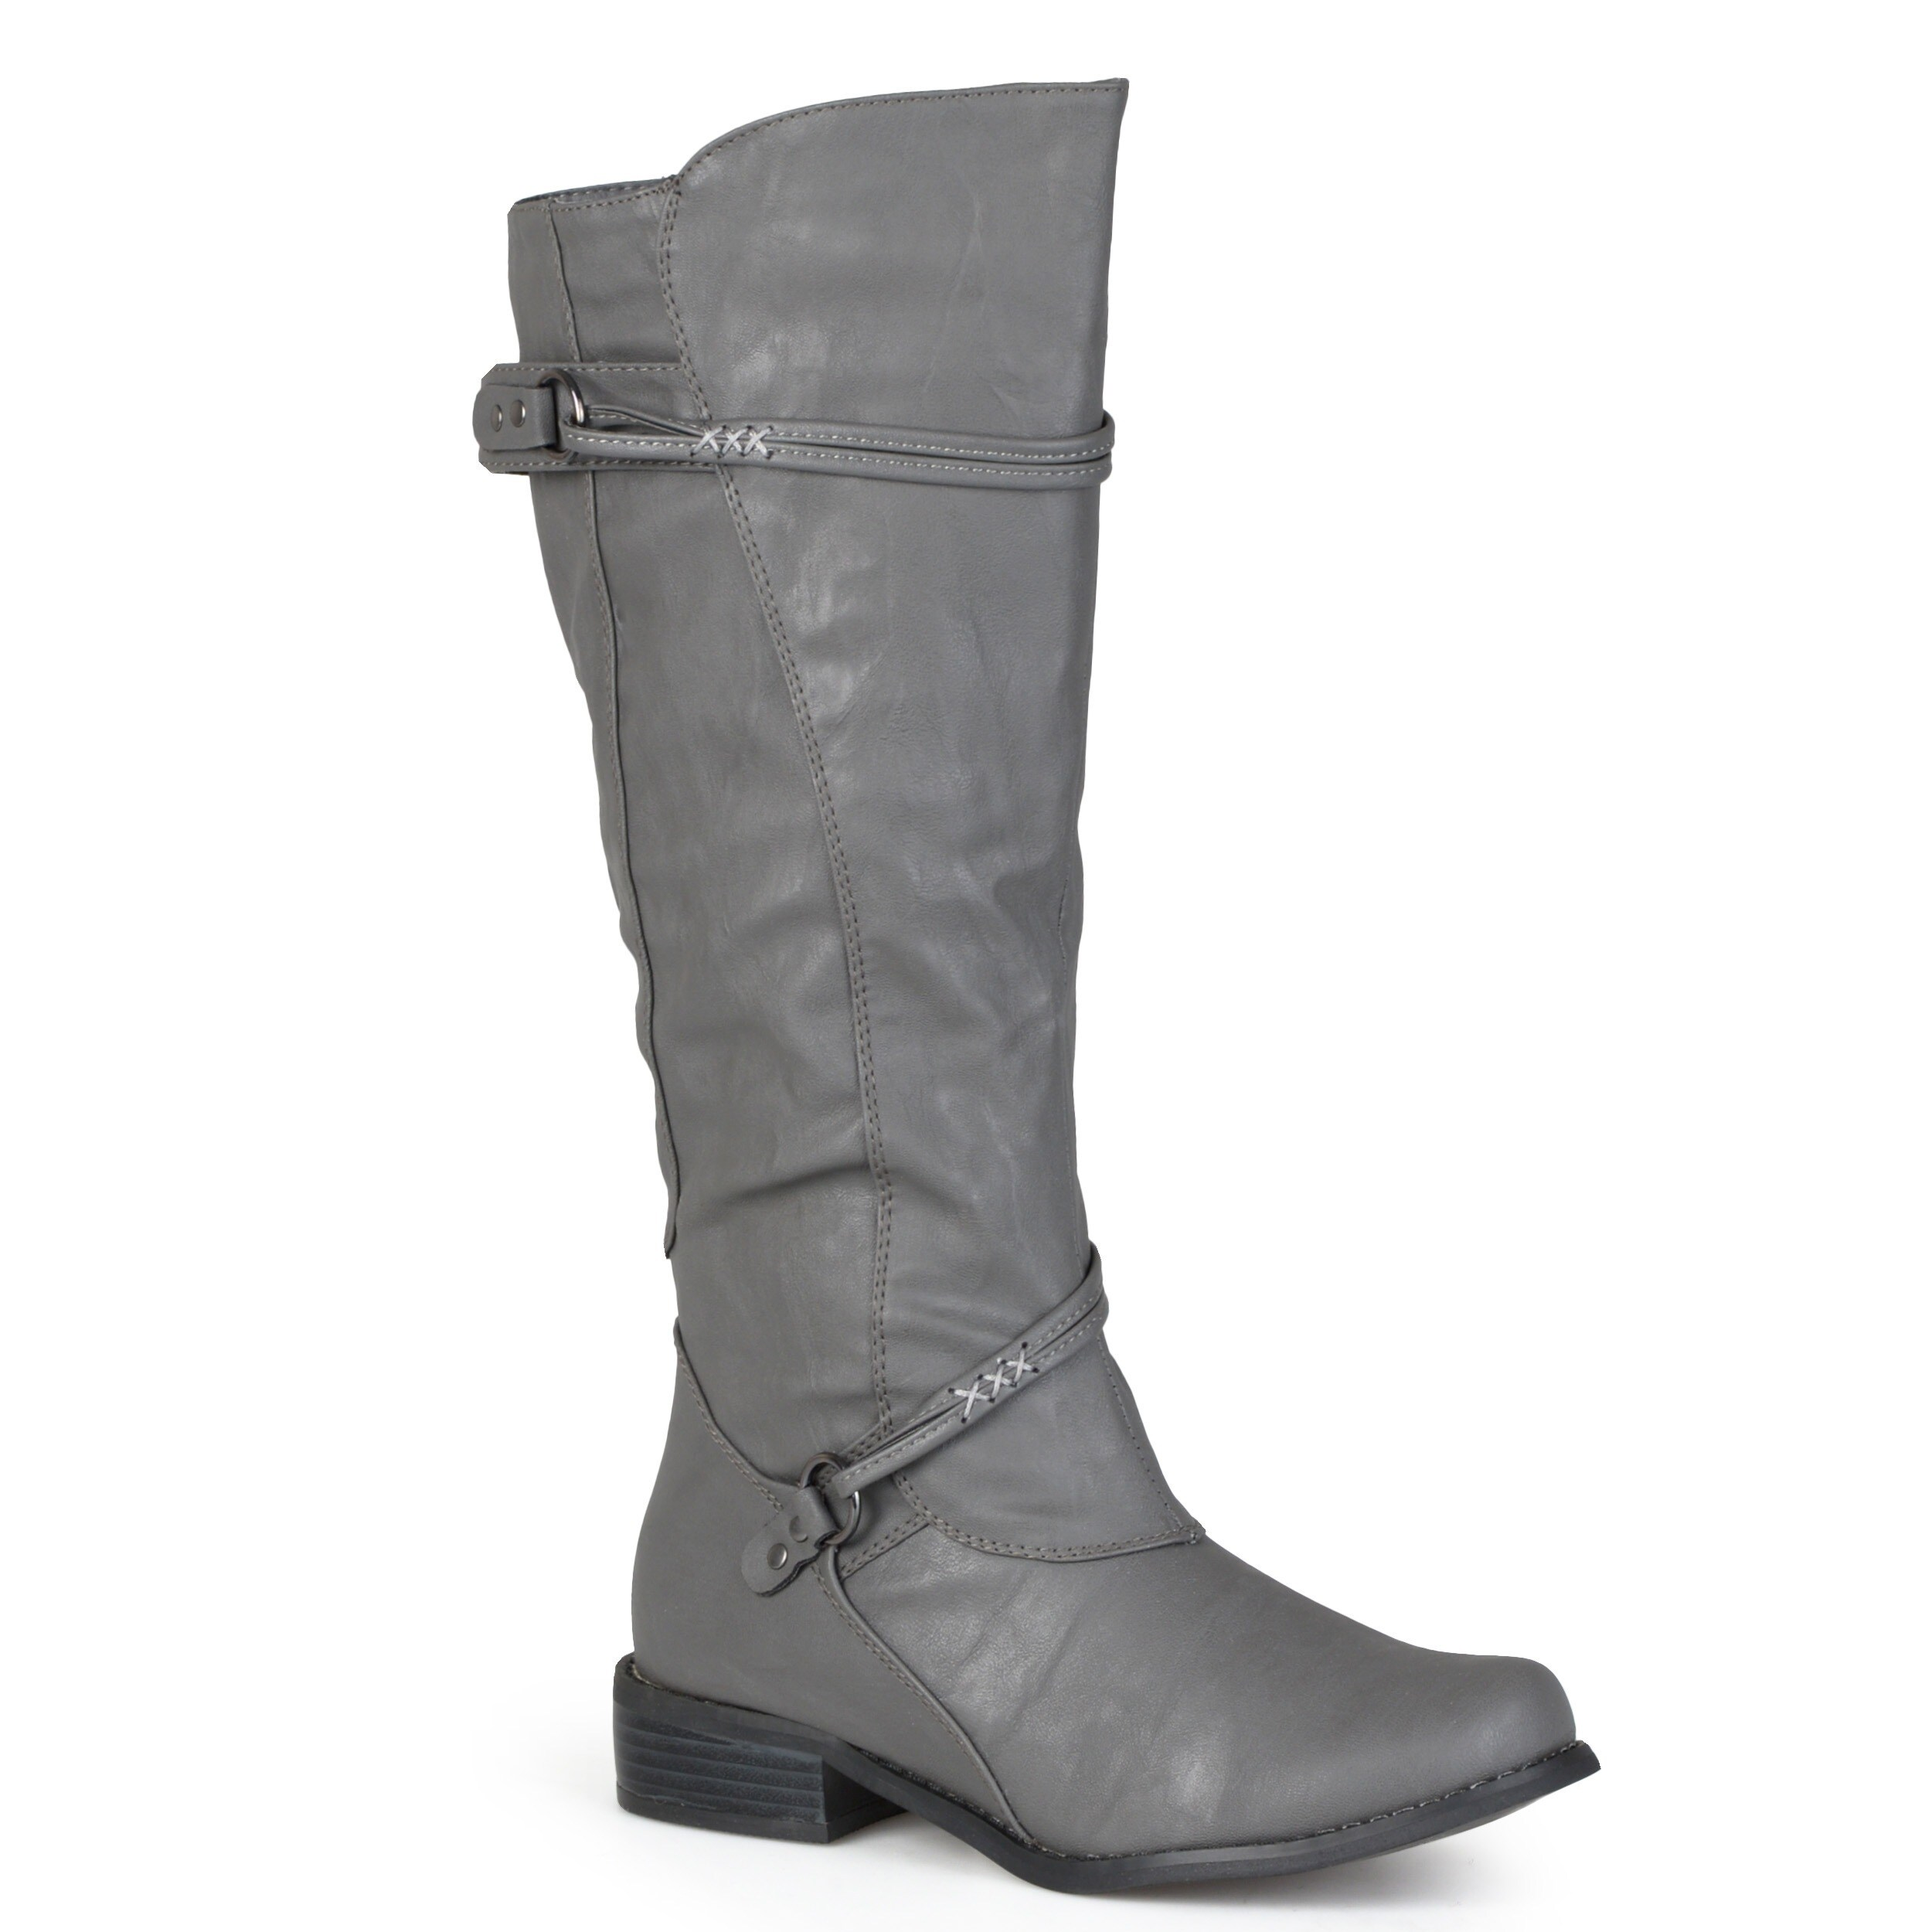 704e9ad396db Buy Women's Boots Online at Overstock | Our Best Women's Shoes Deals